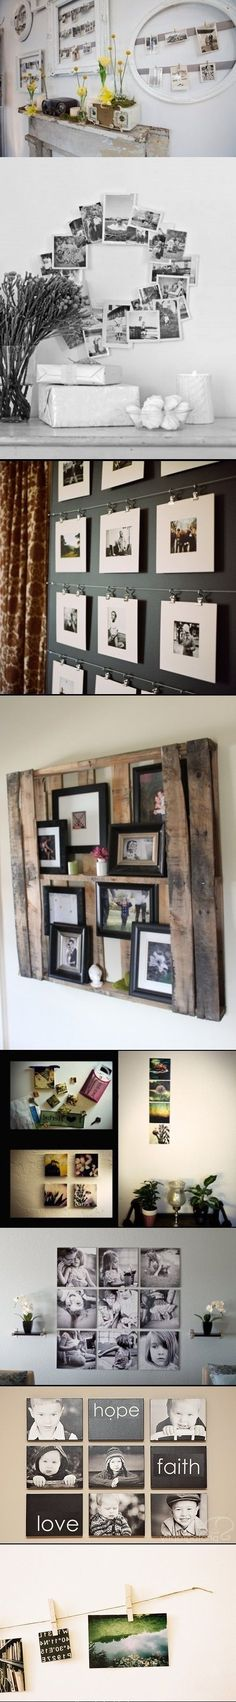 Diy Crafts Ideas : DIY Ideas to To Display Family Photos On Your Walls